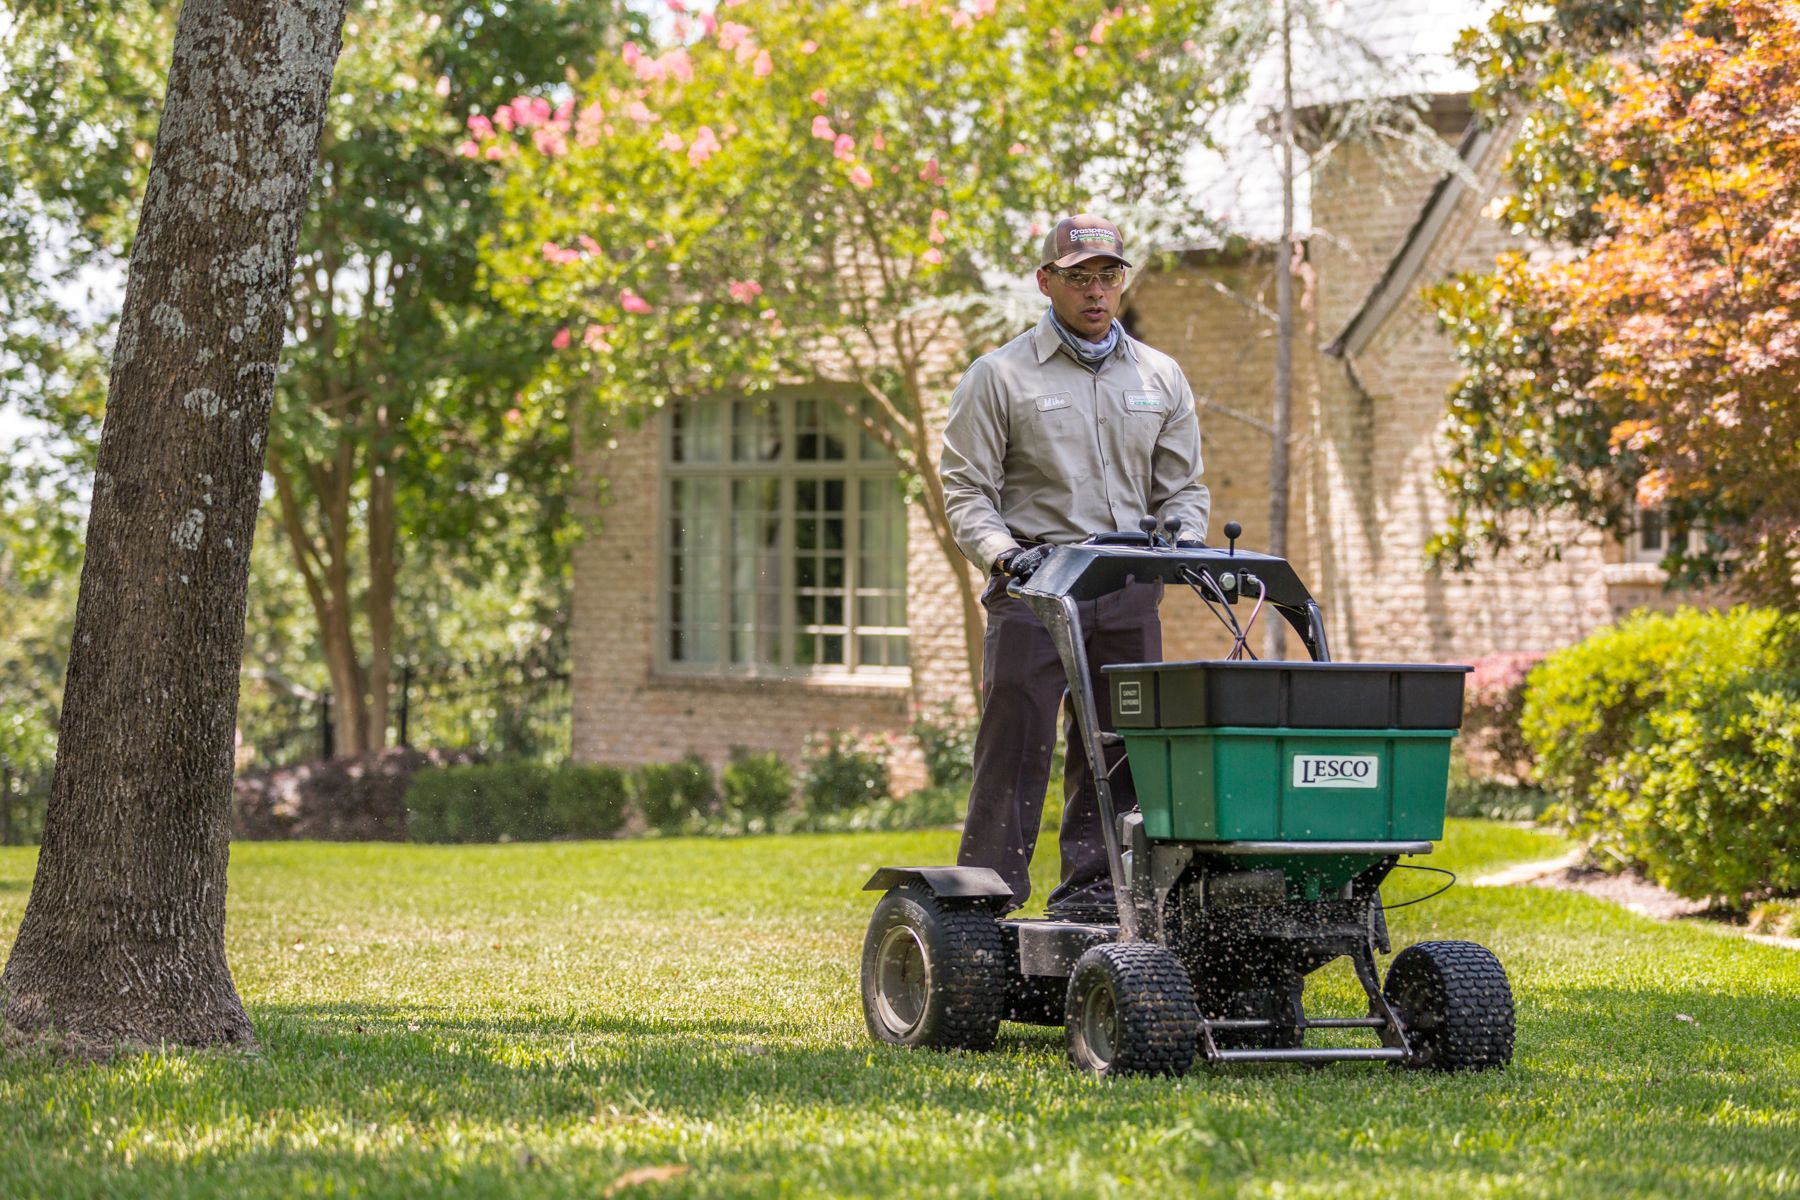 Should You Hire a Lawn Care Company? 5 Reasons to Use Professional Lawn Services